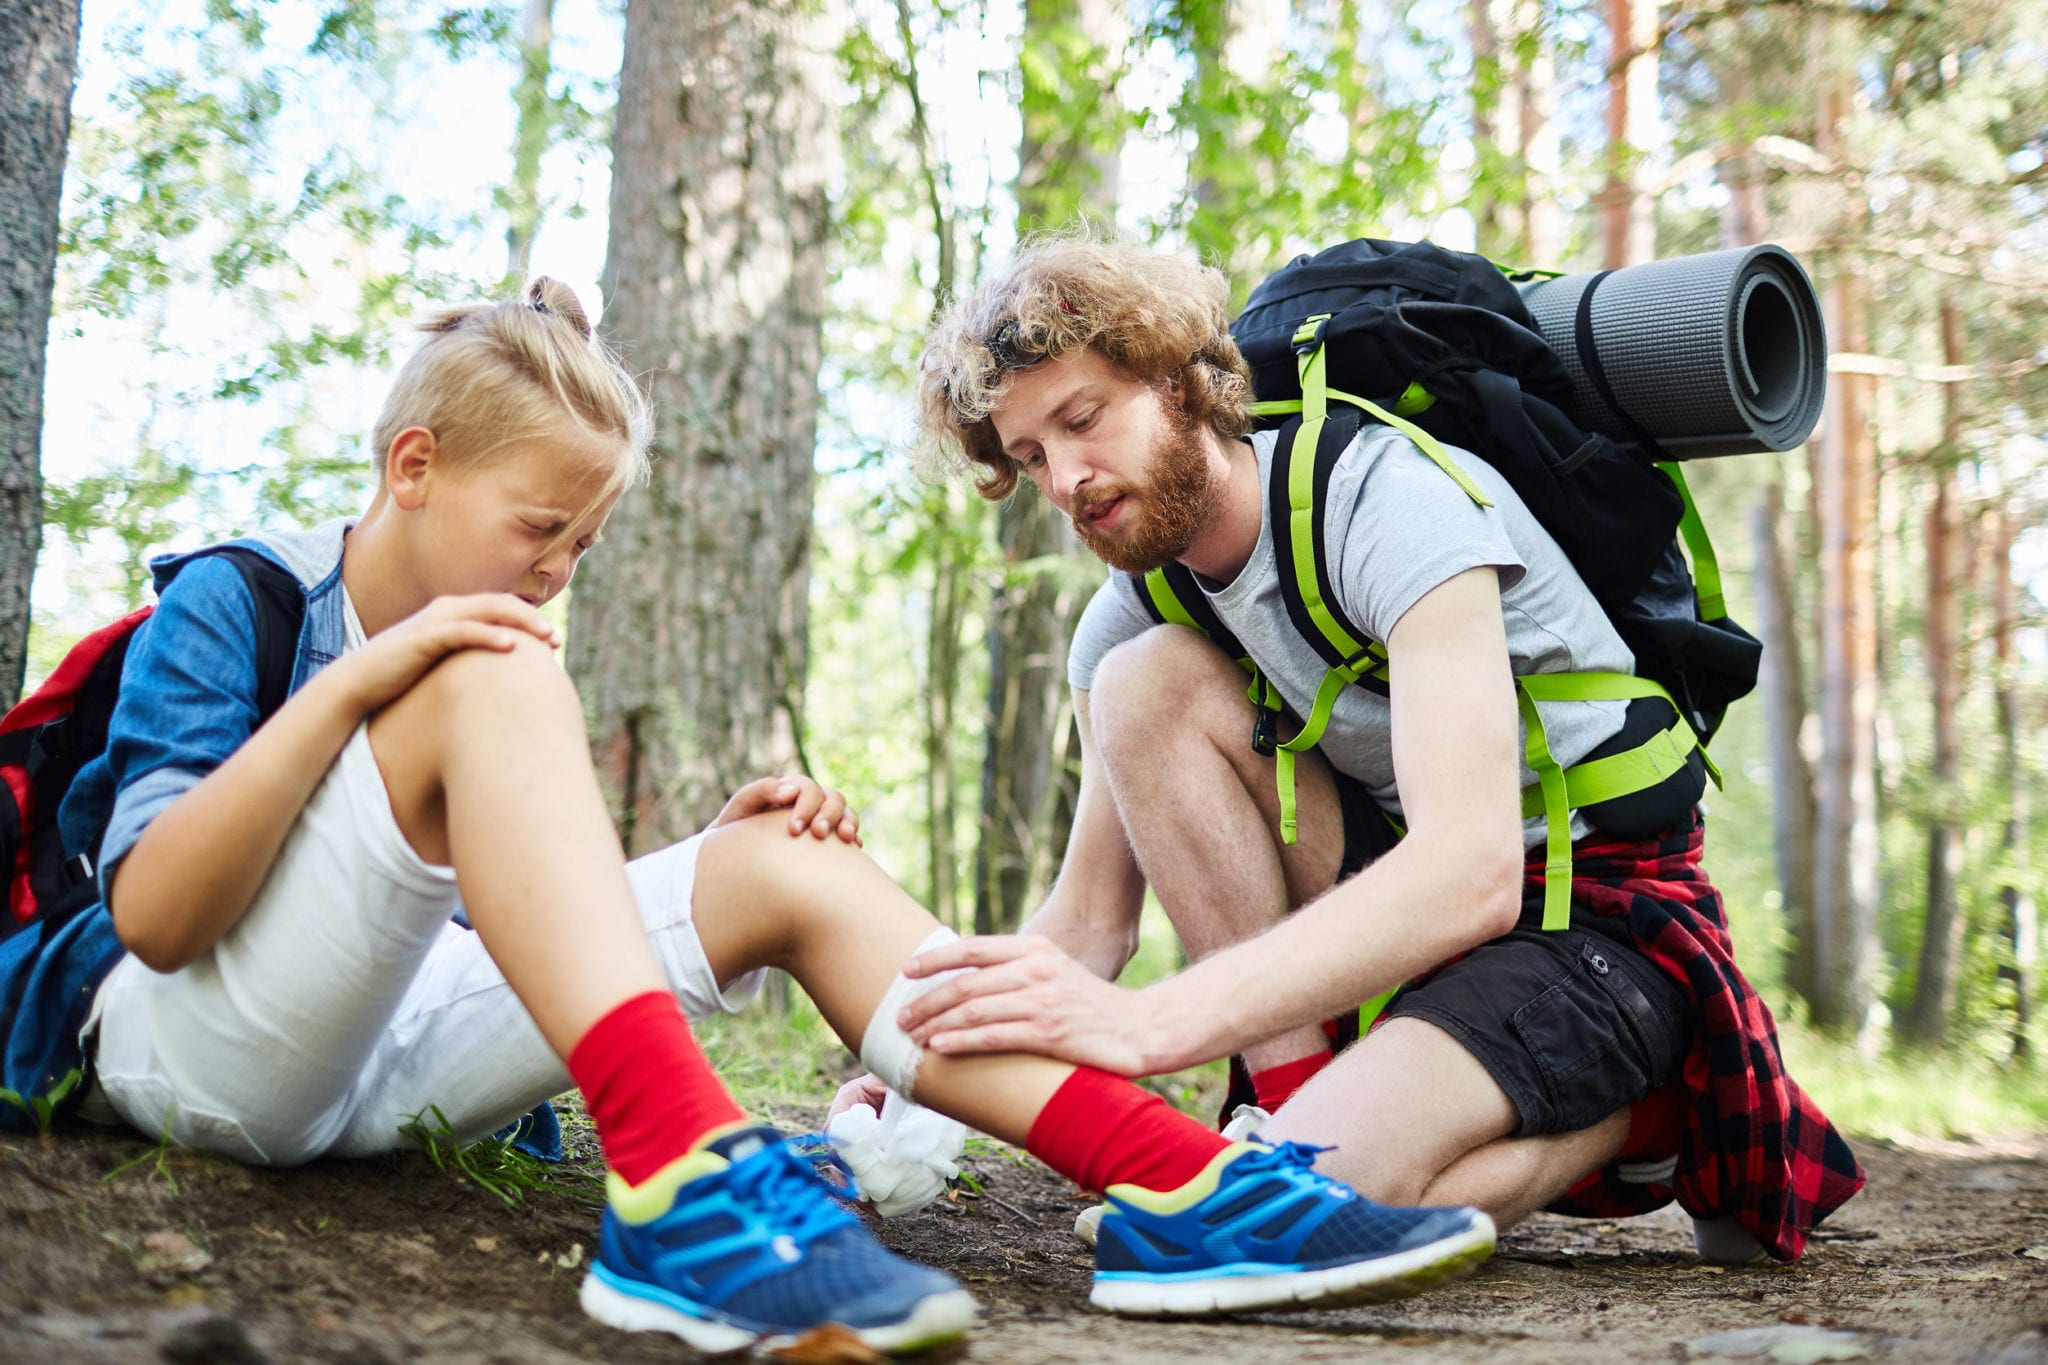 Understand Legal Basics on Texas Summer Camp Injuries